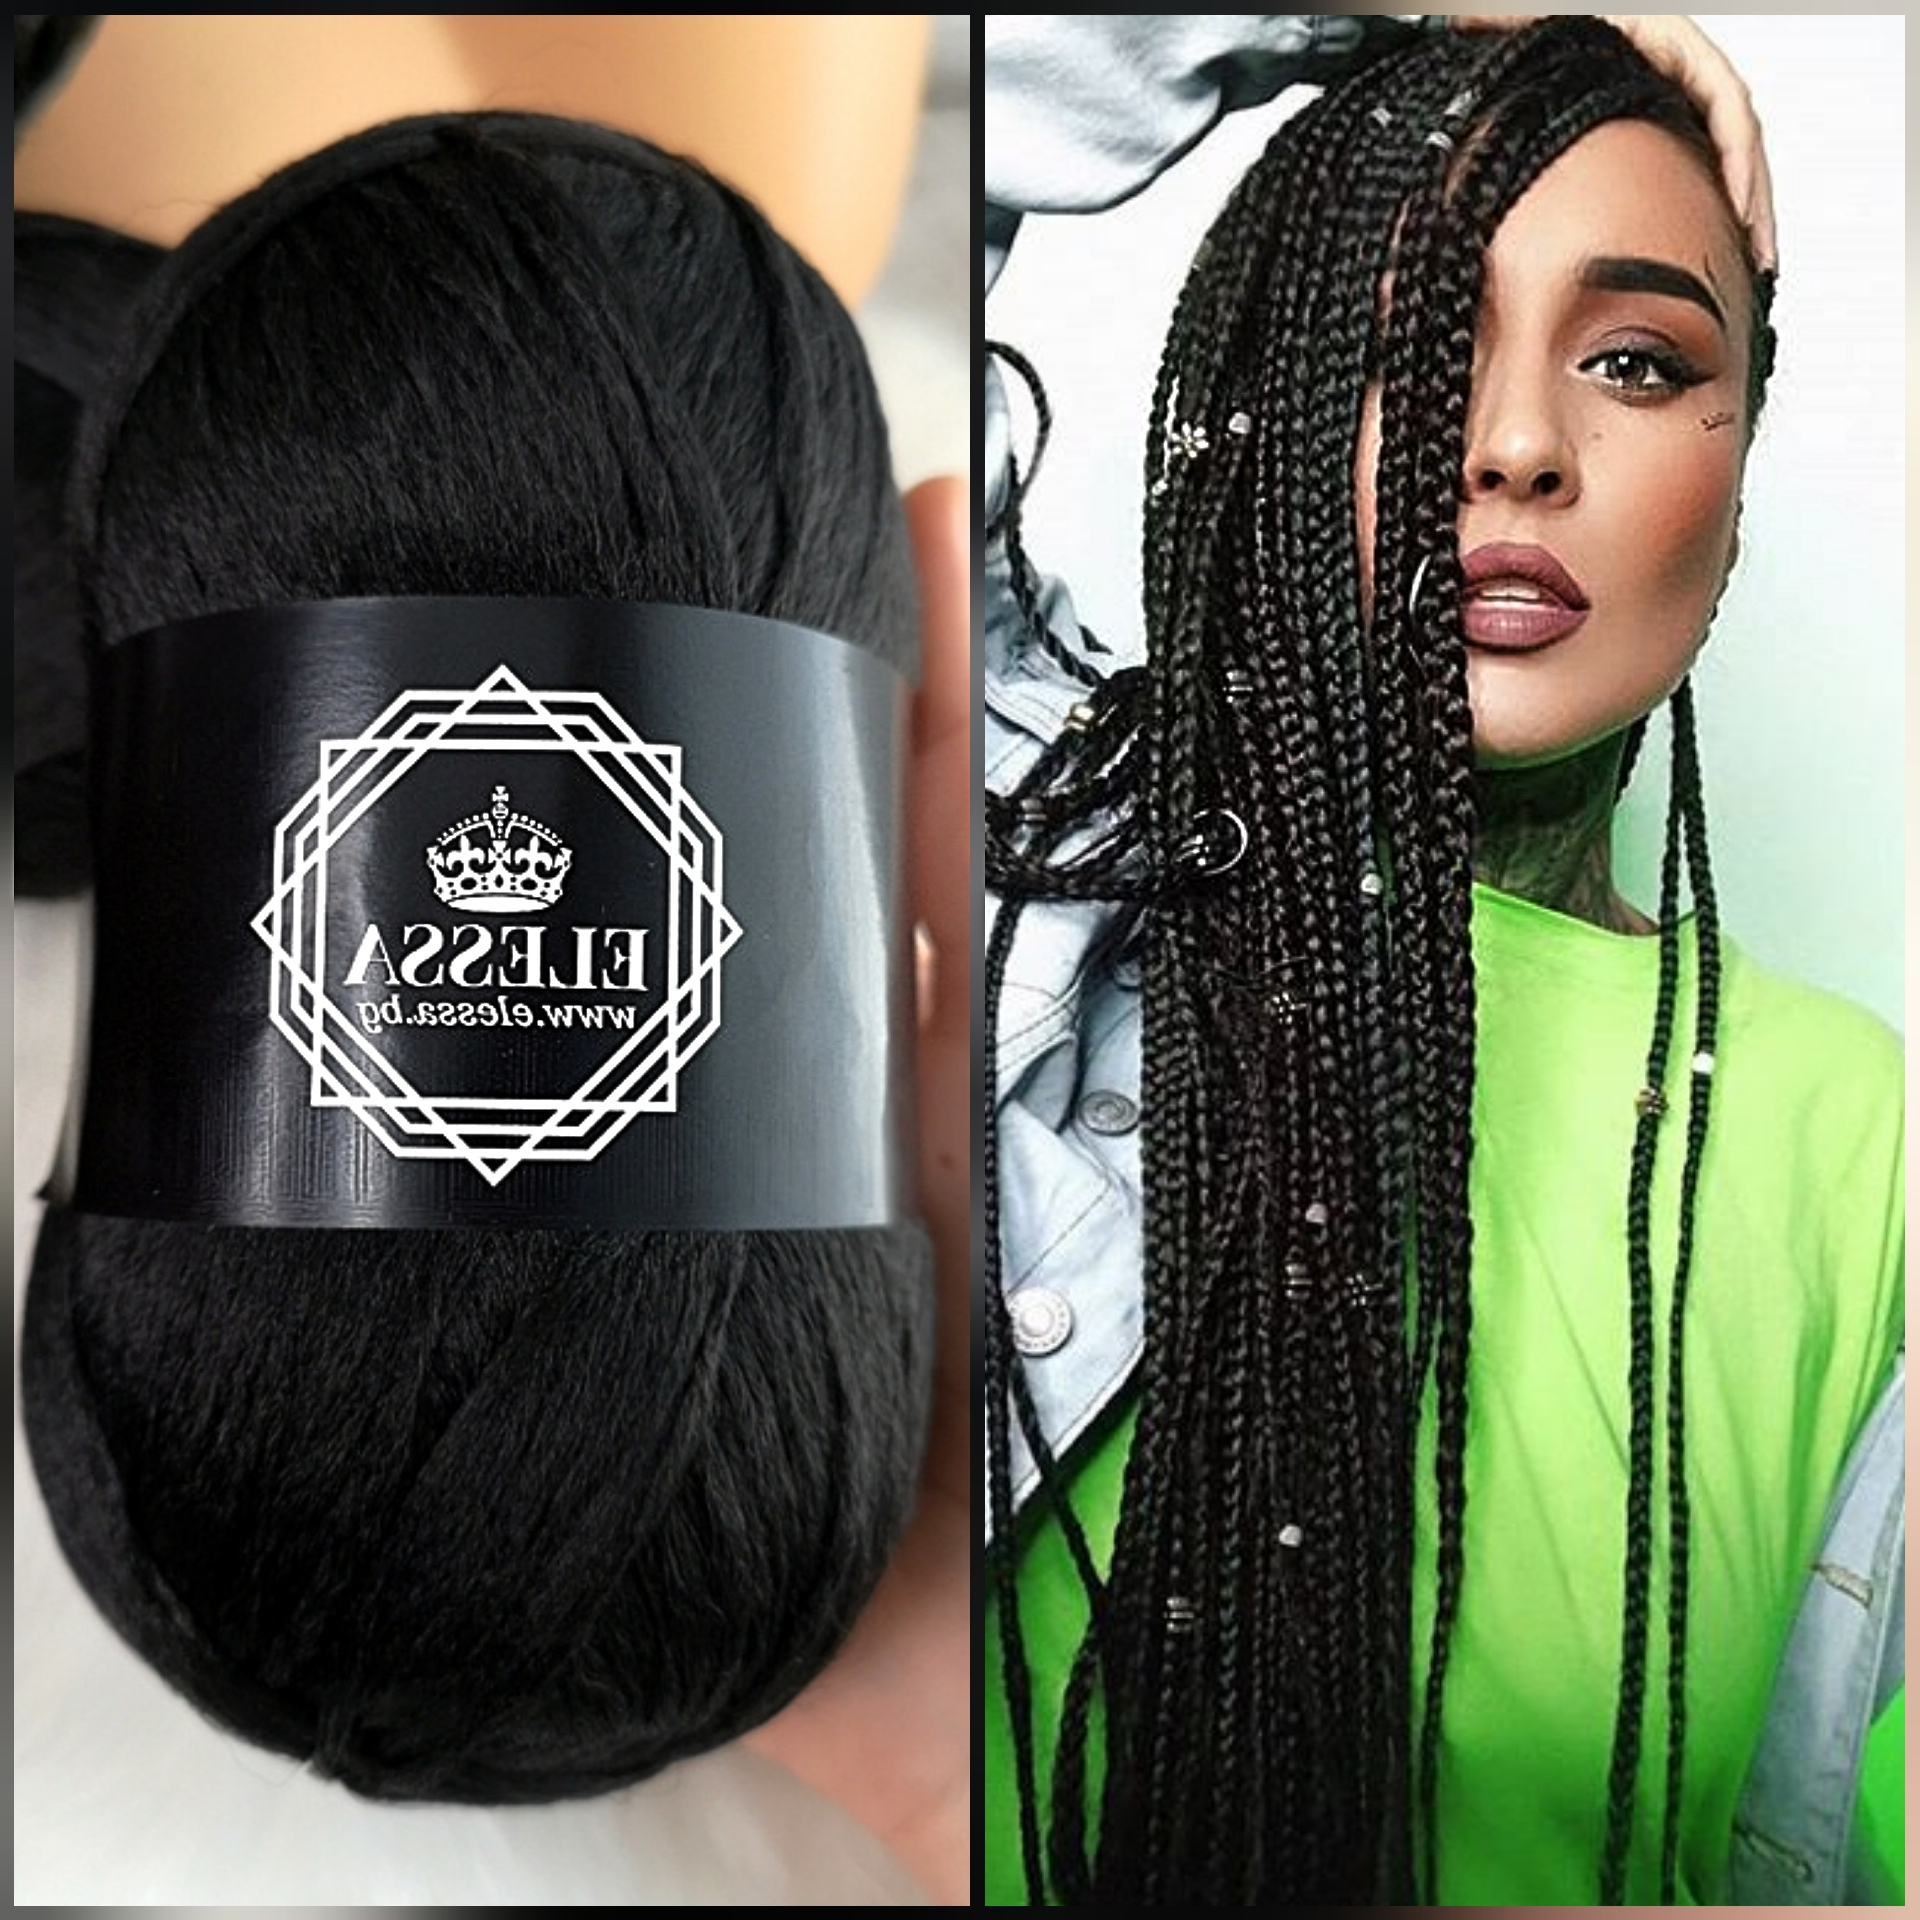 Brazilian Yarn For Braids High Quality Acrylic Wool For Hair Inside Favorite Braided Hairstyles With Beads And Wraps (View 4 of 20)